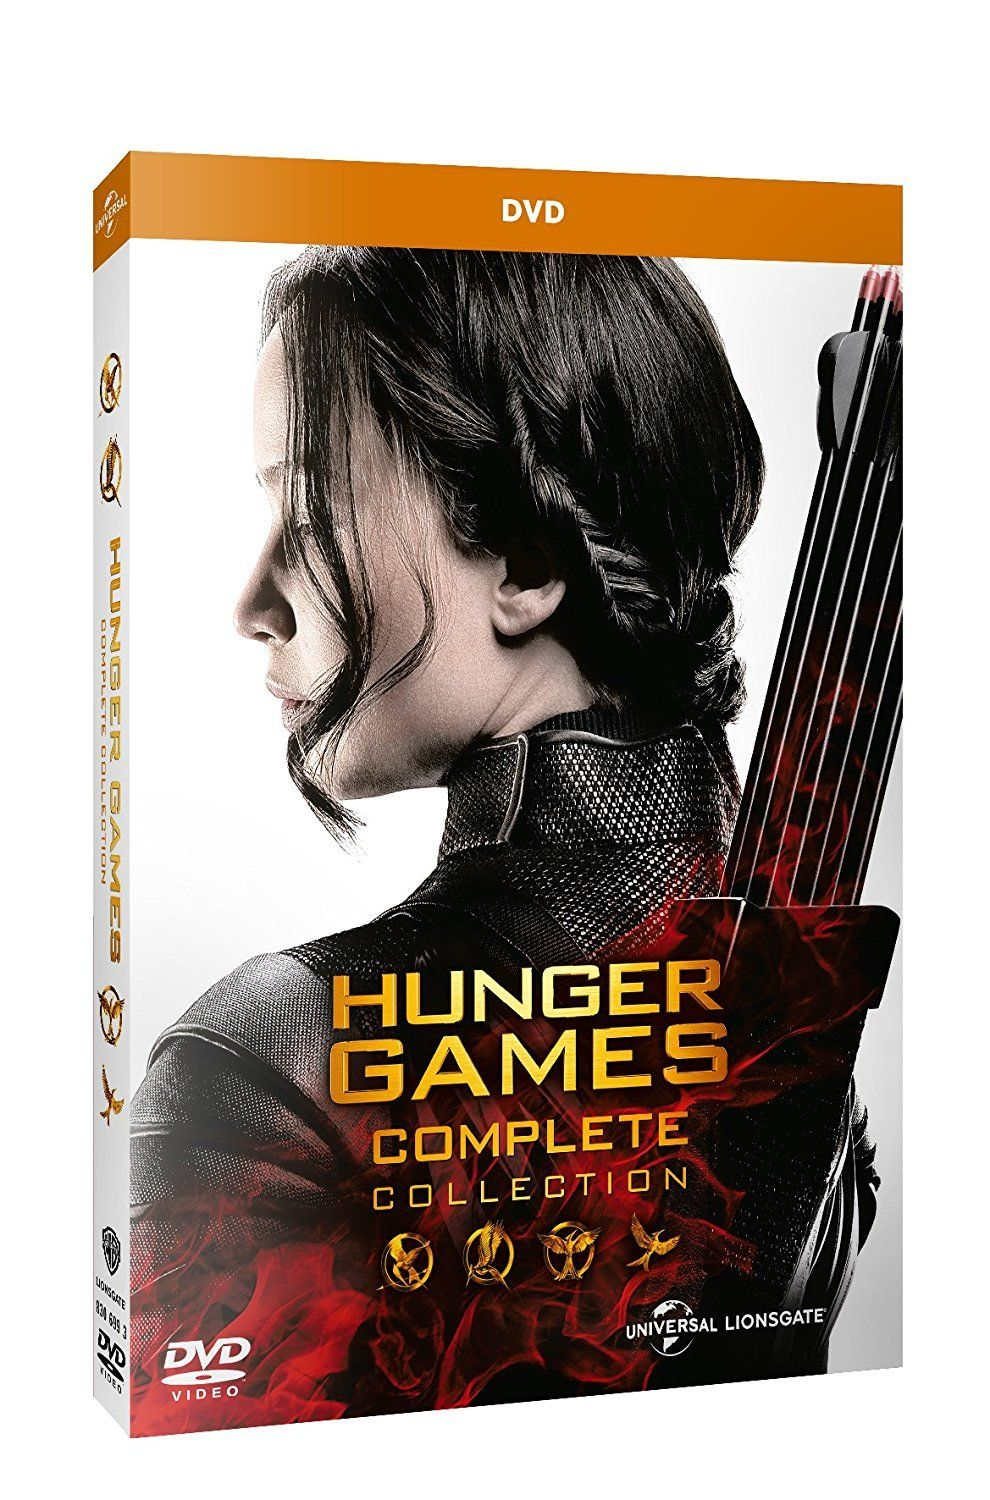 Hunger Games Complete Collection 4 Dvd Italia Ad Complete Games Hunger Italia Hunger Games Hunger Games Saga Dvd